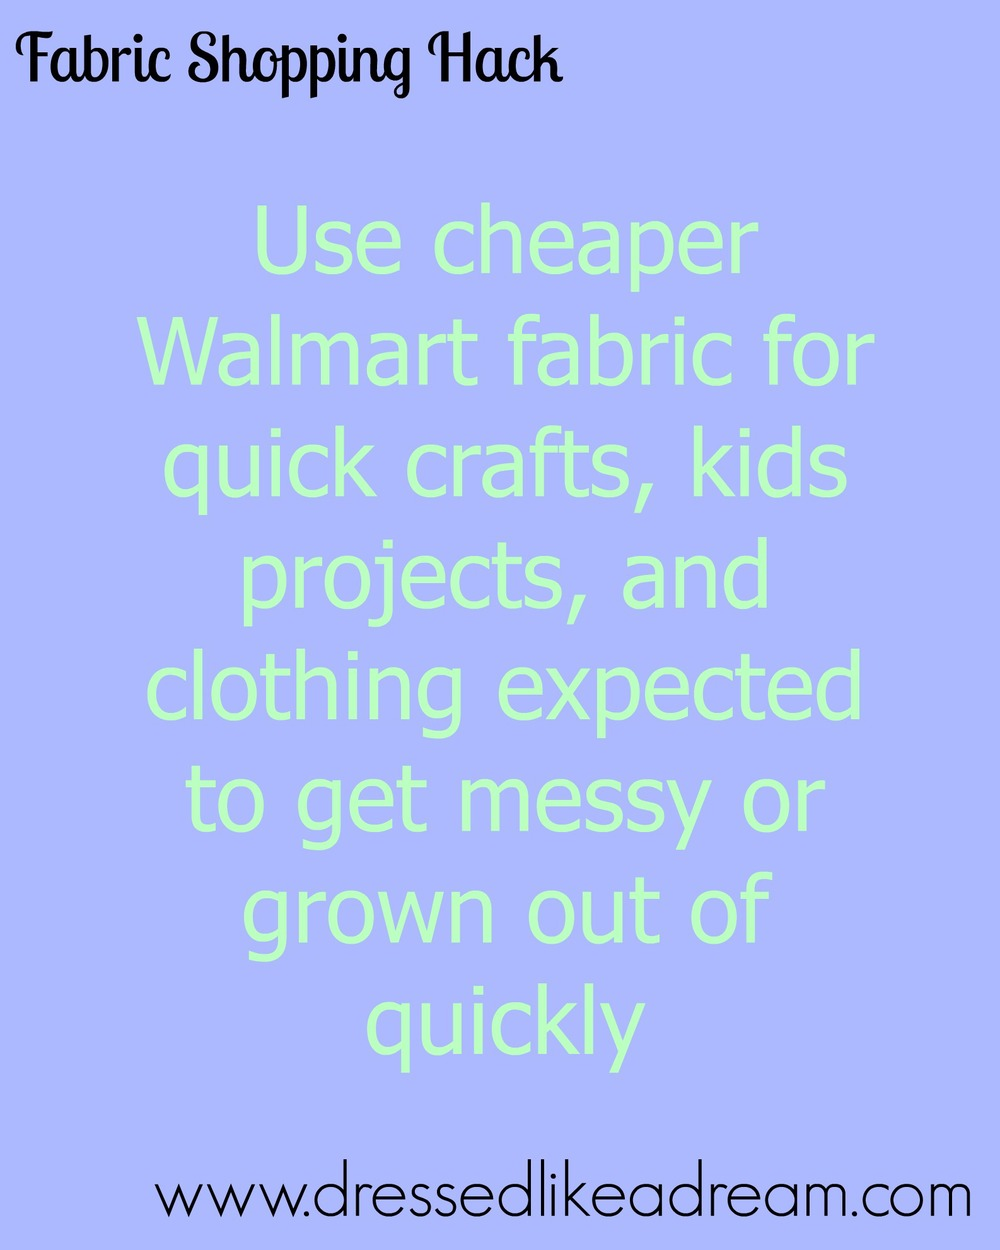 Walmart crafts and fabrics - Walmart Is A Good Option For Projects Where High Fabric Quality Is Not A Necessity One Time Costumes Casual Crafts And Clothes That Will Most Likely Get